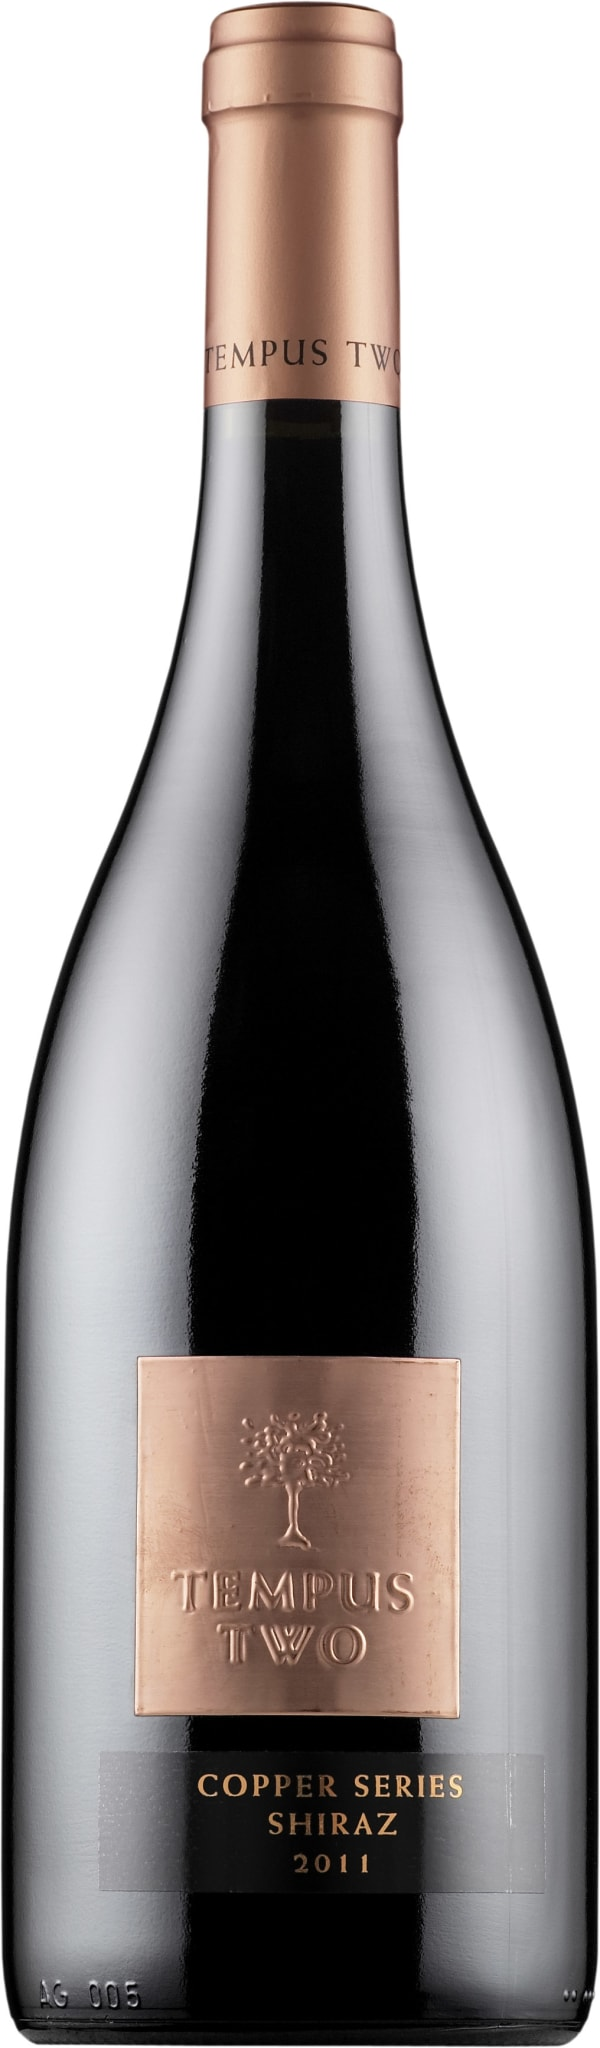 Tempus Two Copper Series Shiraz 2013